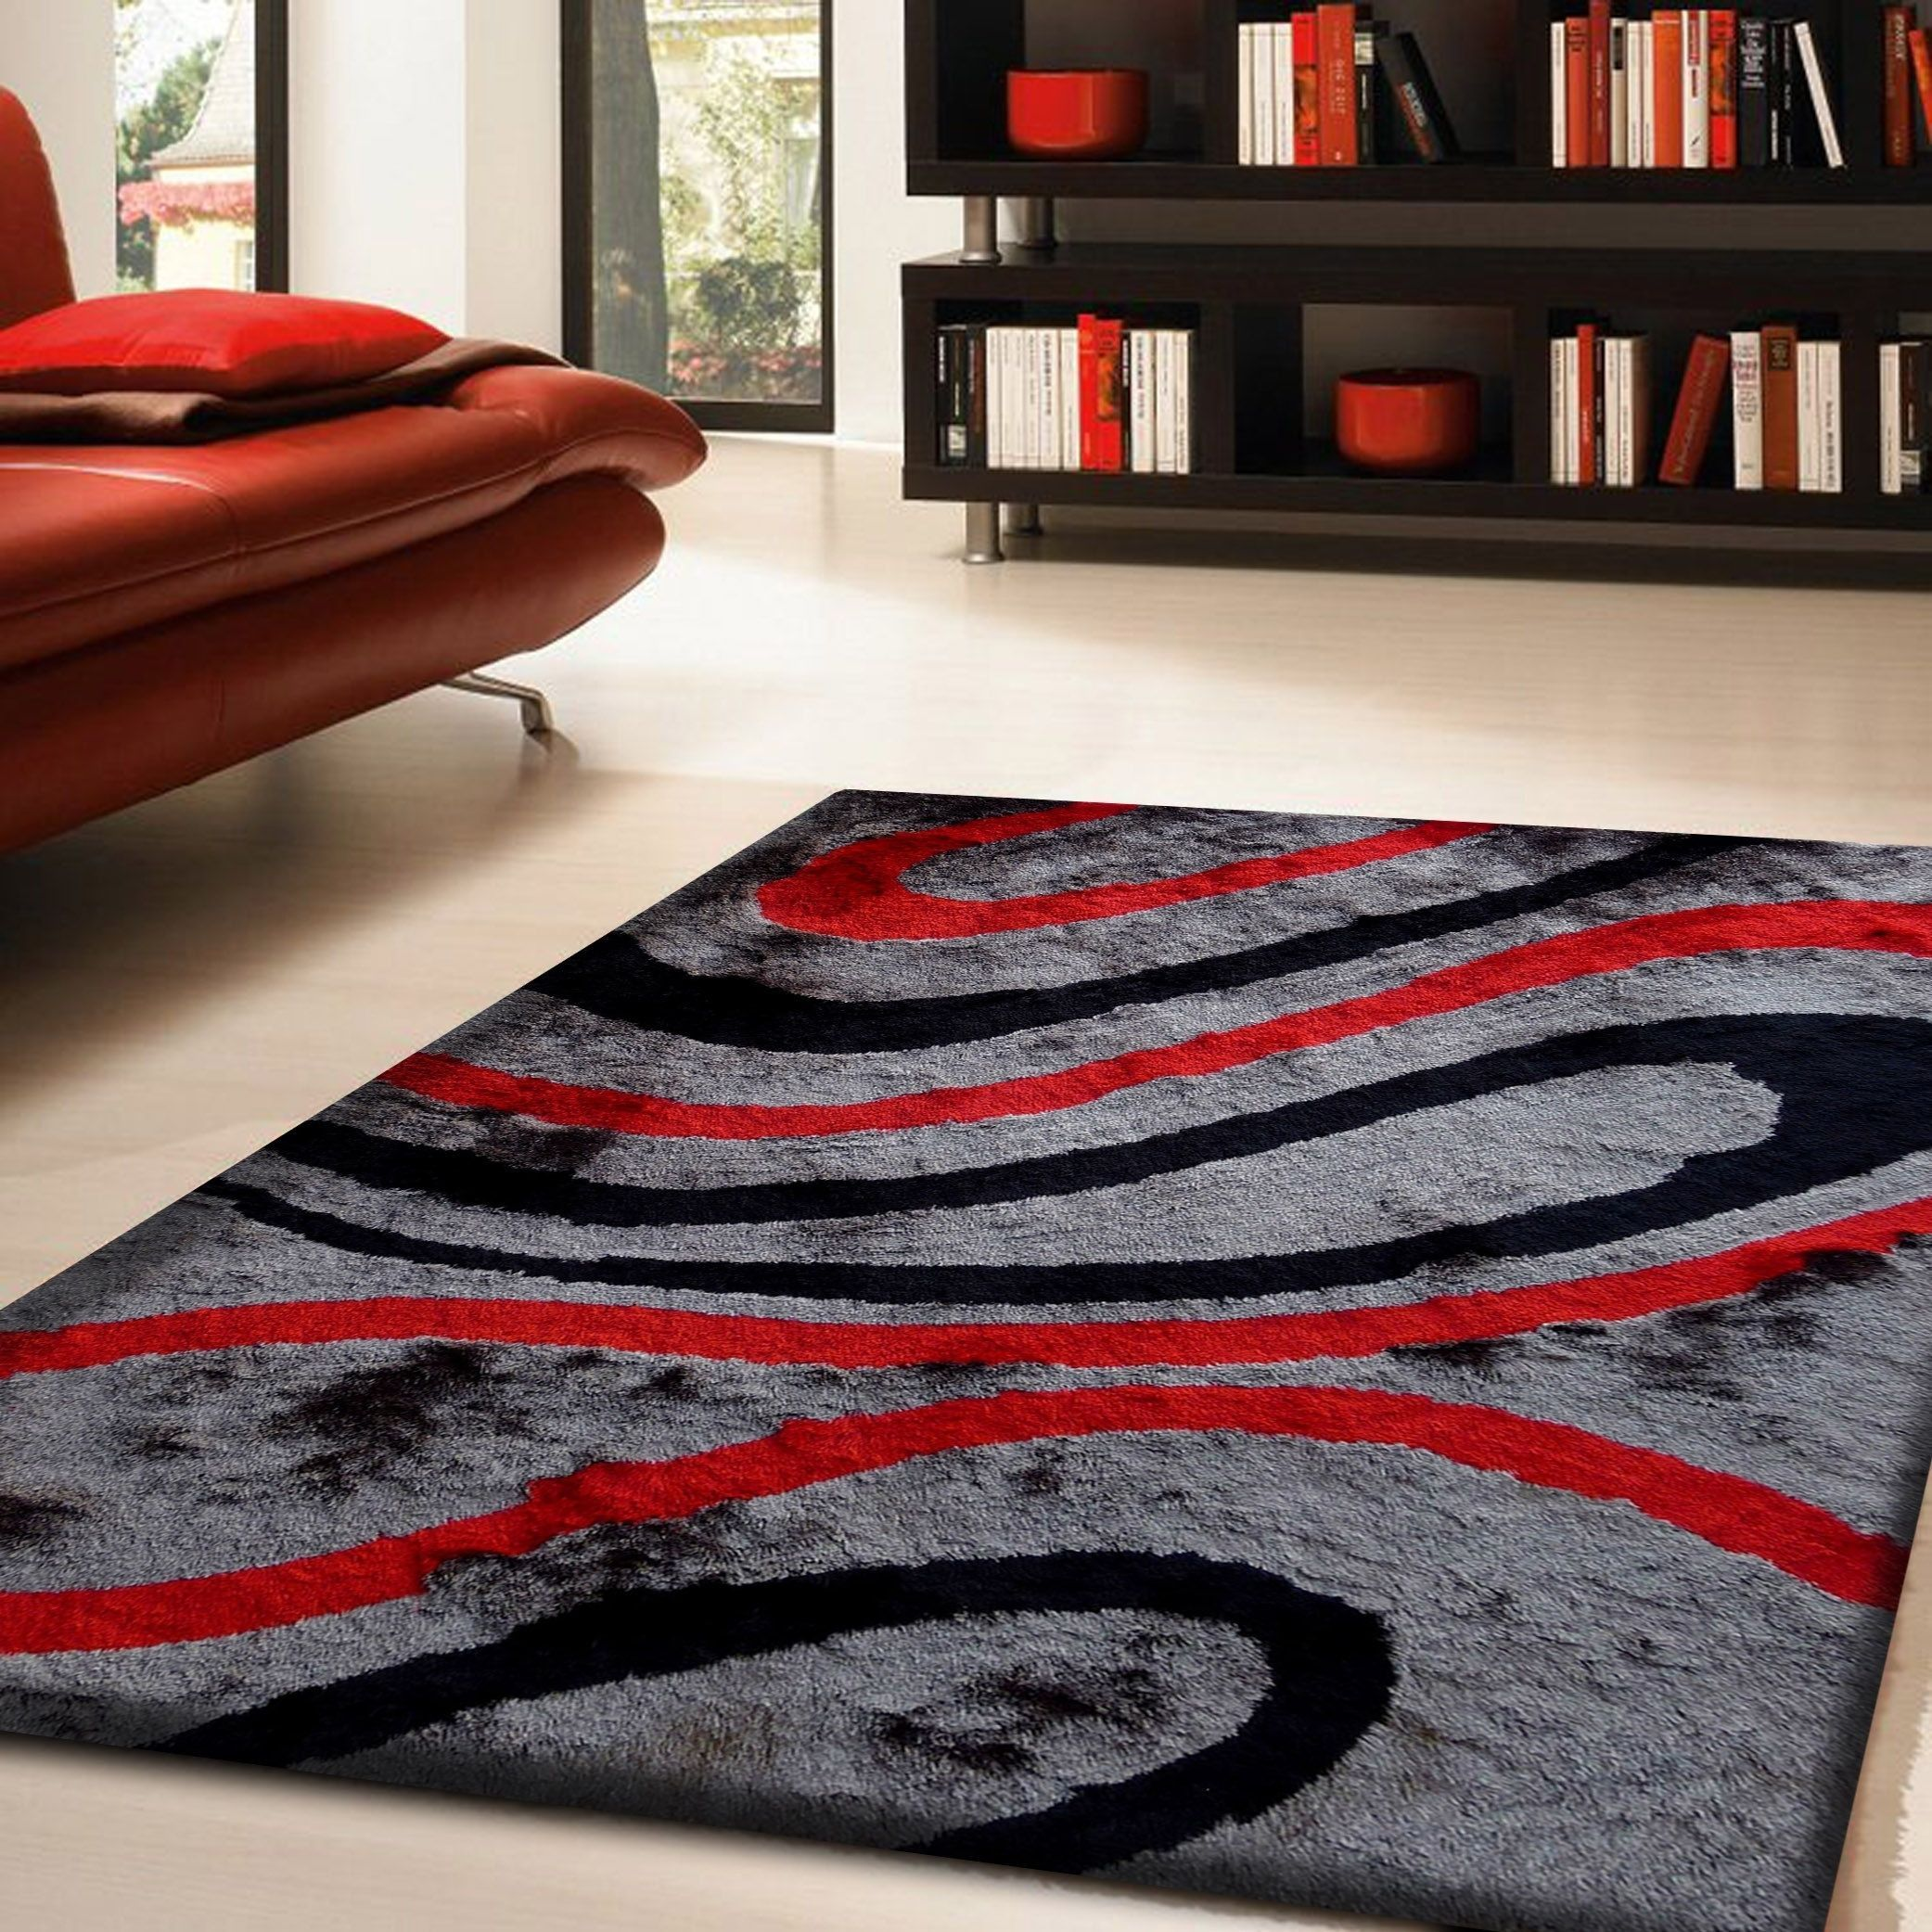 Polyester 2 Inch Pile Thick Shag Rug with Geometric Design 5 x